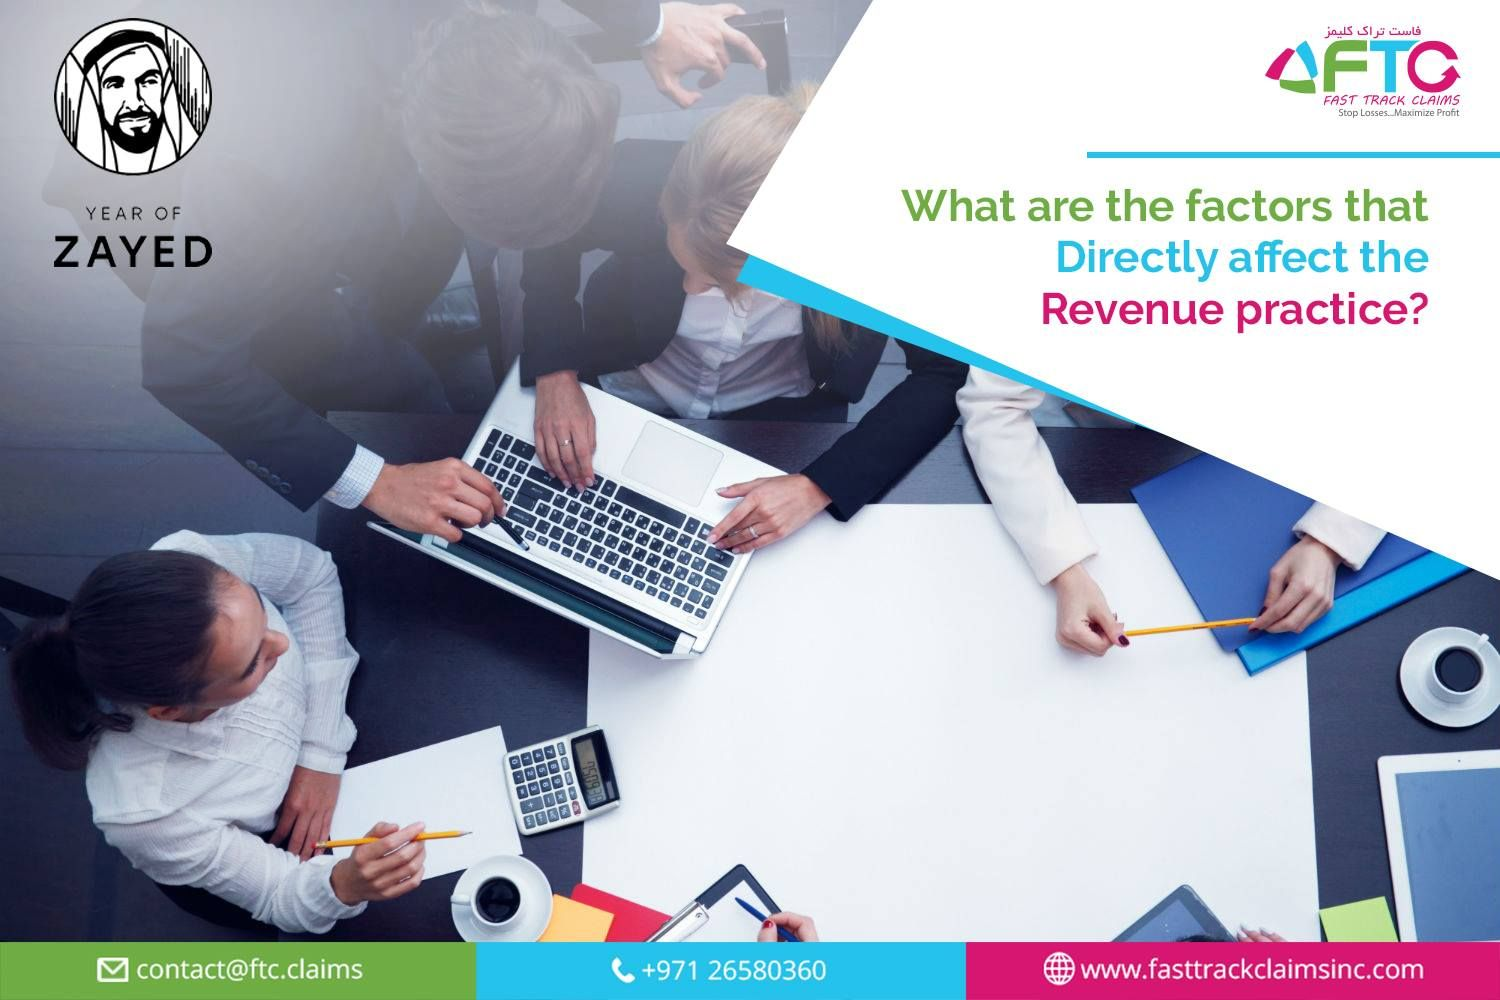 The factors that directly affect the revenue practices are